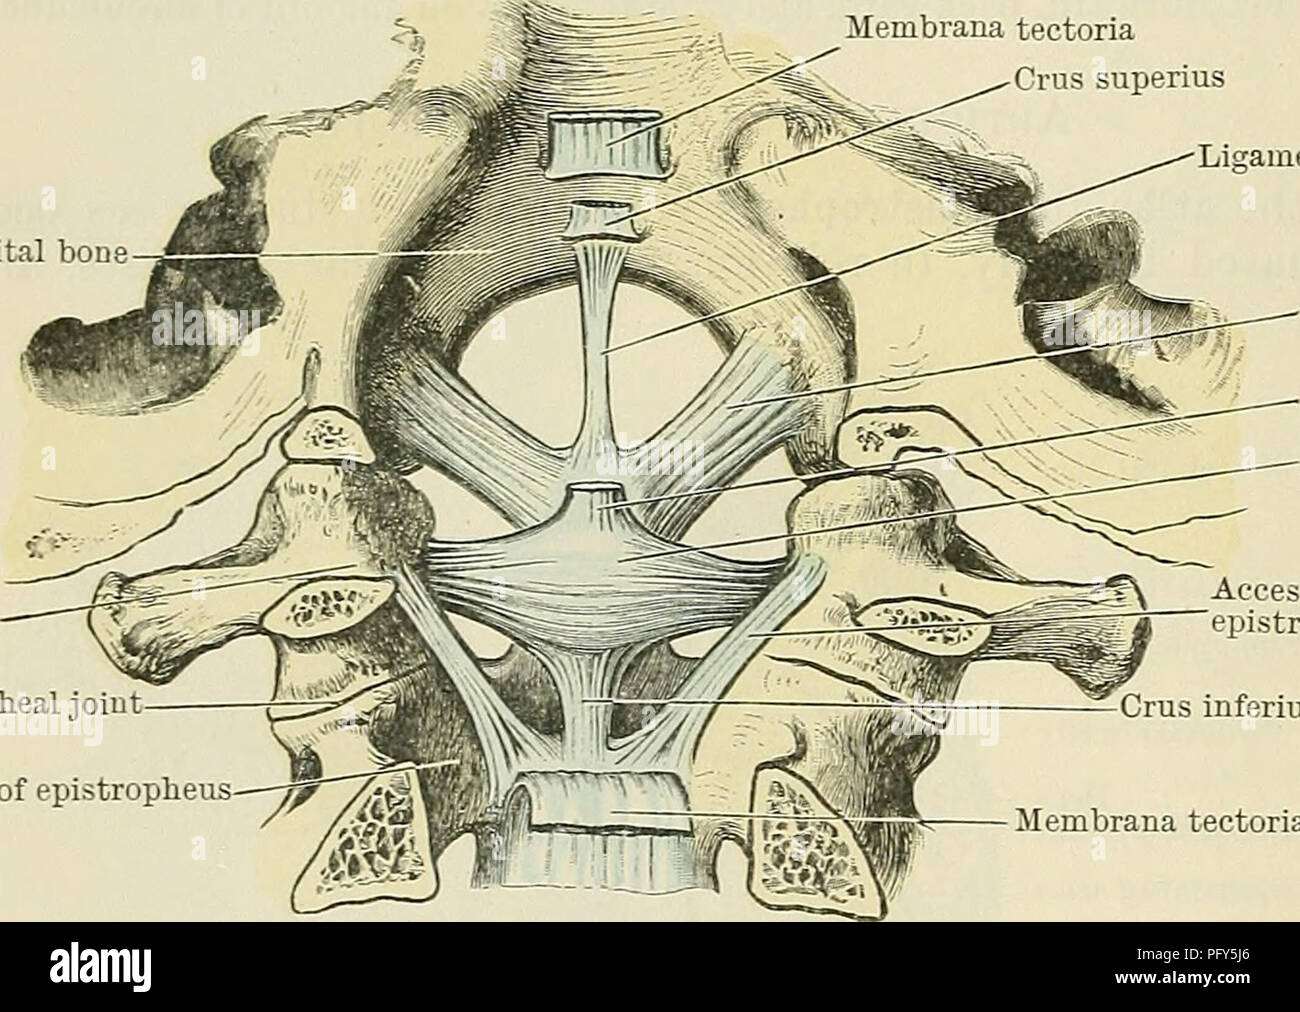 Vertebral Arch Stock Photos & Vertebral Arch Stock Images - Alamy